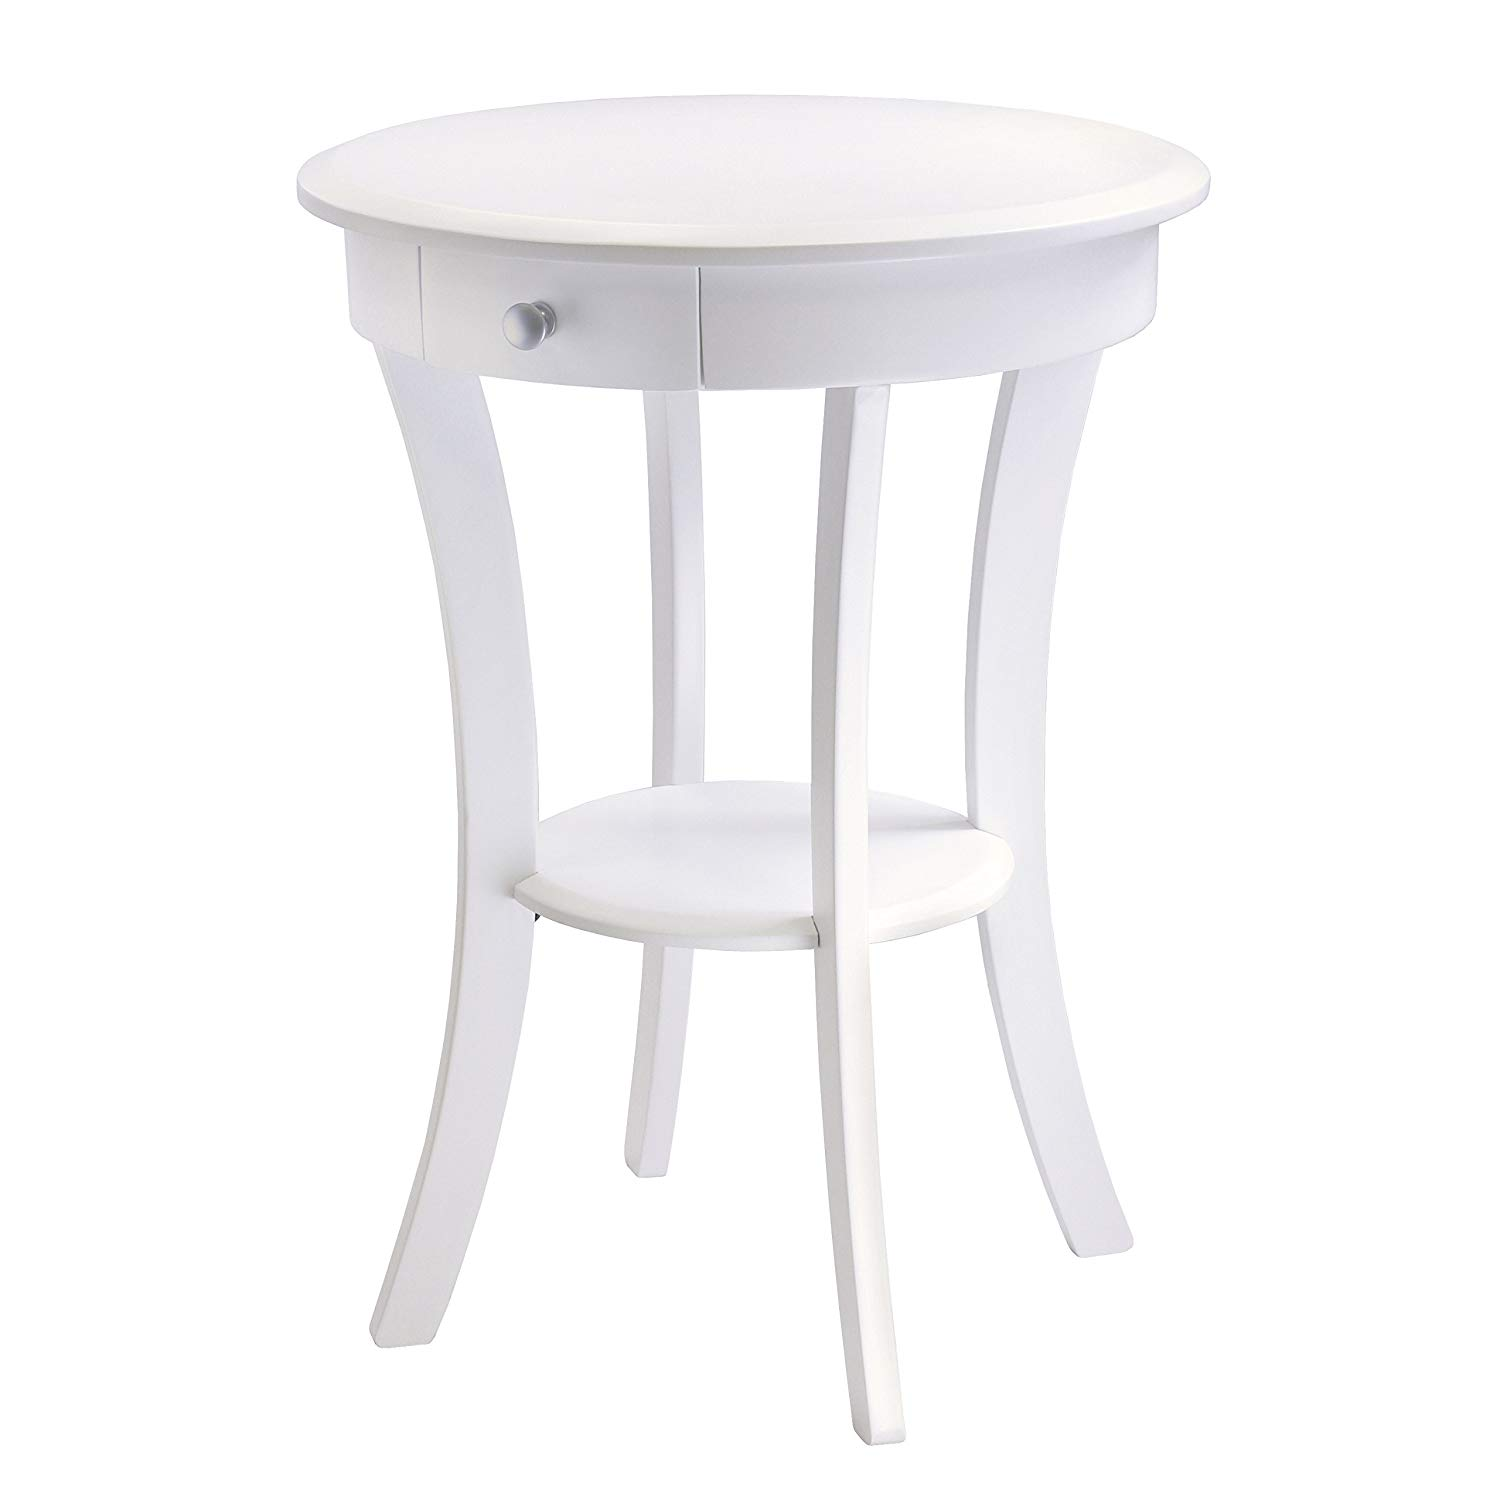 painting hafley end lovell yellow small ideas decor outdoor darley accent redmond kijiji plus table tiffany design mini shades tables target living lighting contemporary color diy